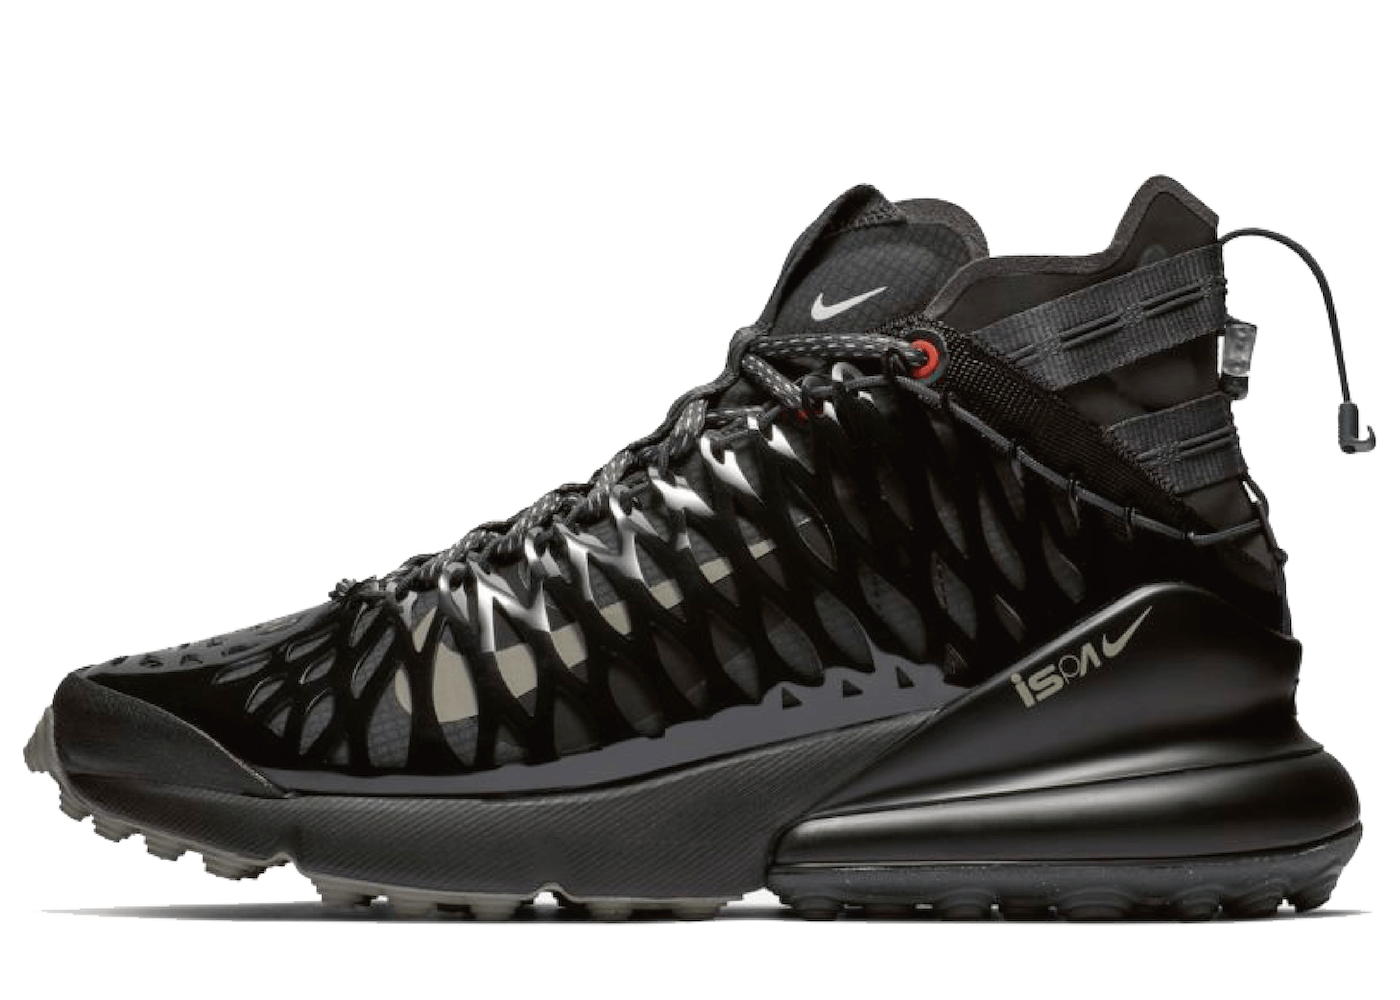 Nike Air Max 270 ISPA Black Anthraciteの写真